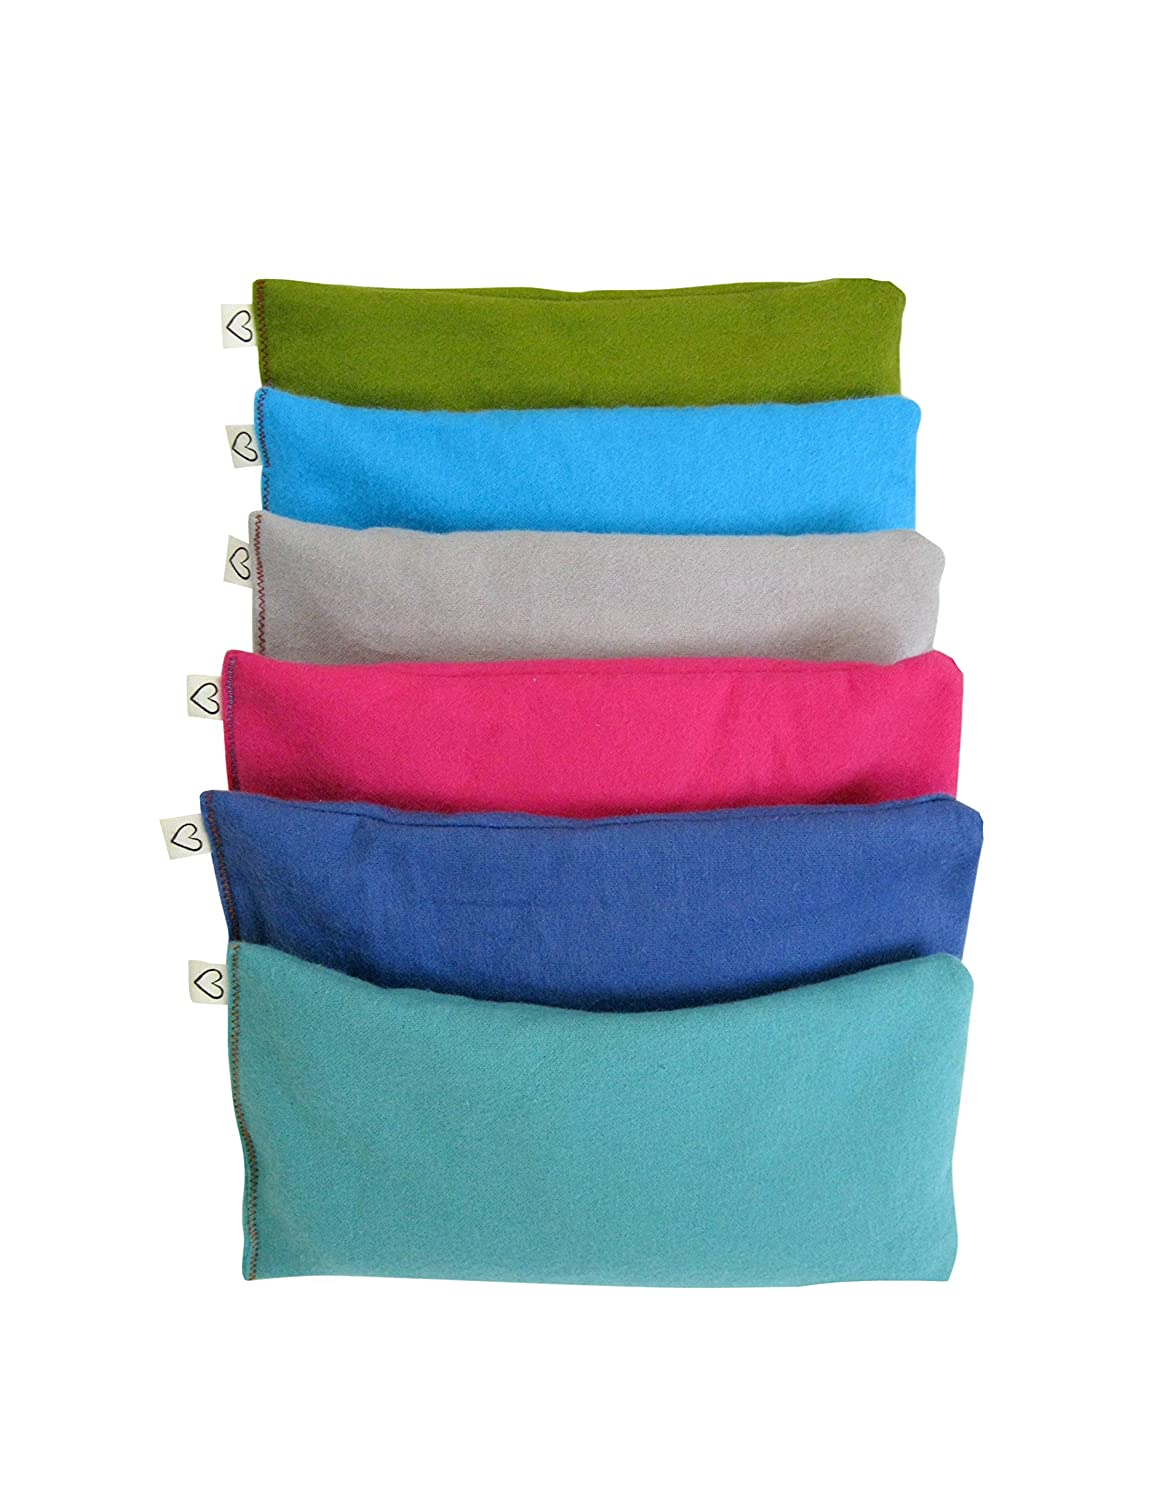 Peacegoods Unscented Organic Flax Seed Eye Pillow - Pack of (6) - Soft Cotton Flannel 4 x 8.5 - Pink Green Purple Gray Fuschia Aqua Turquoise Blue